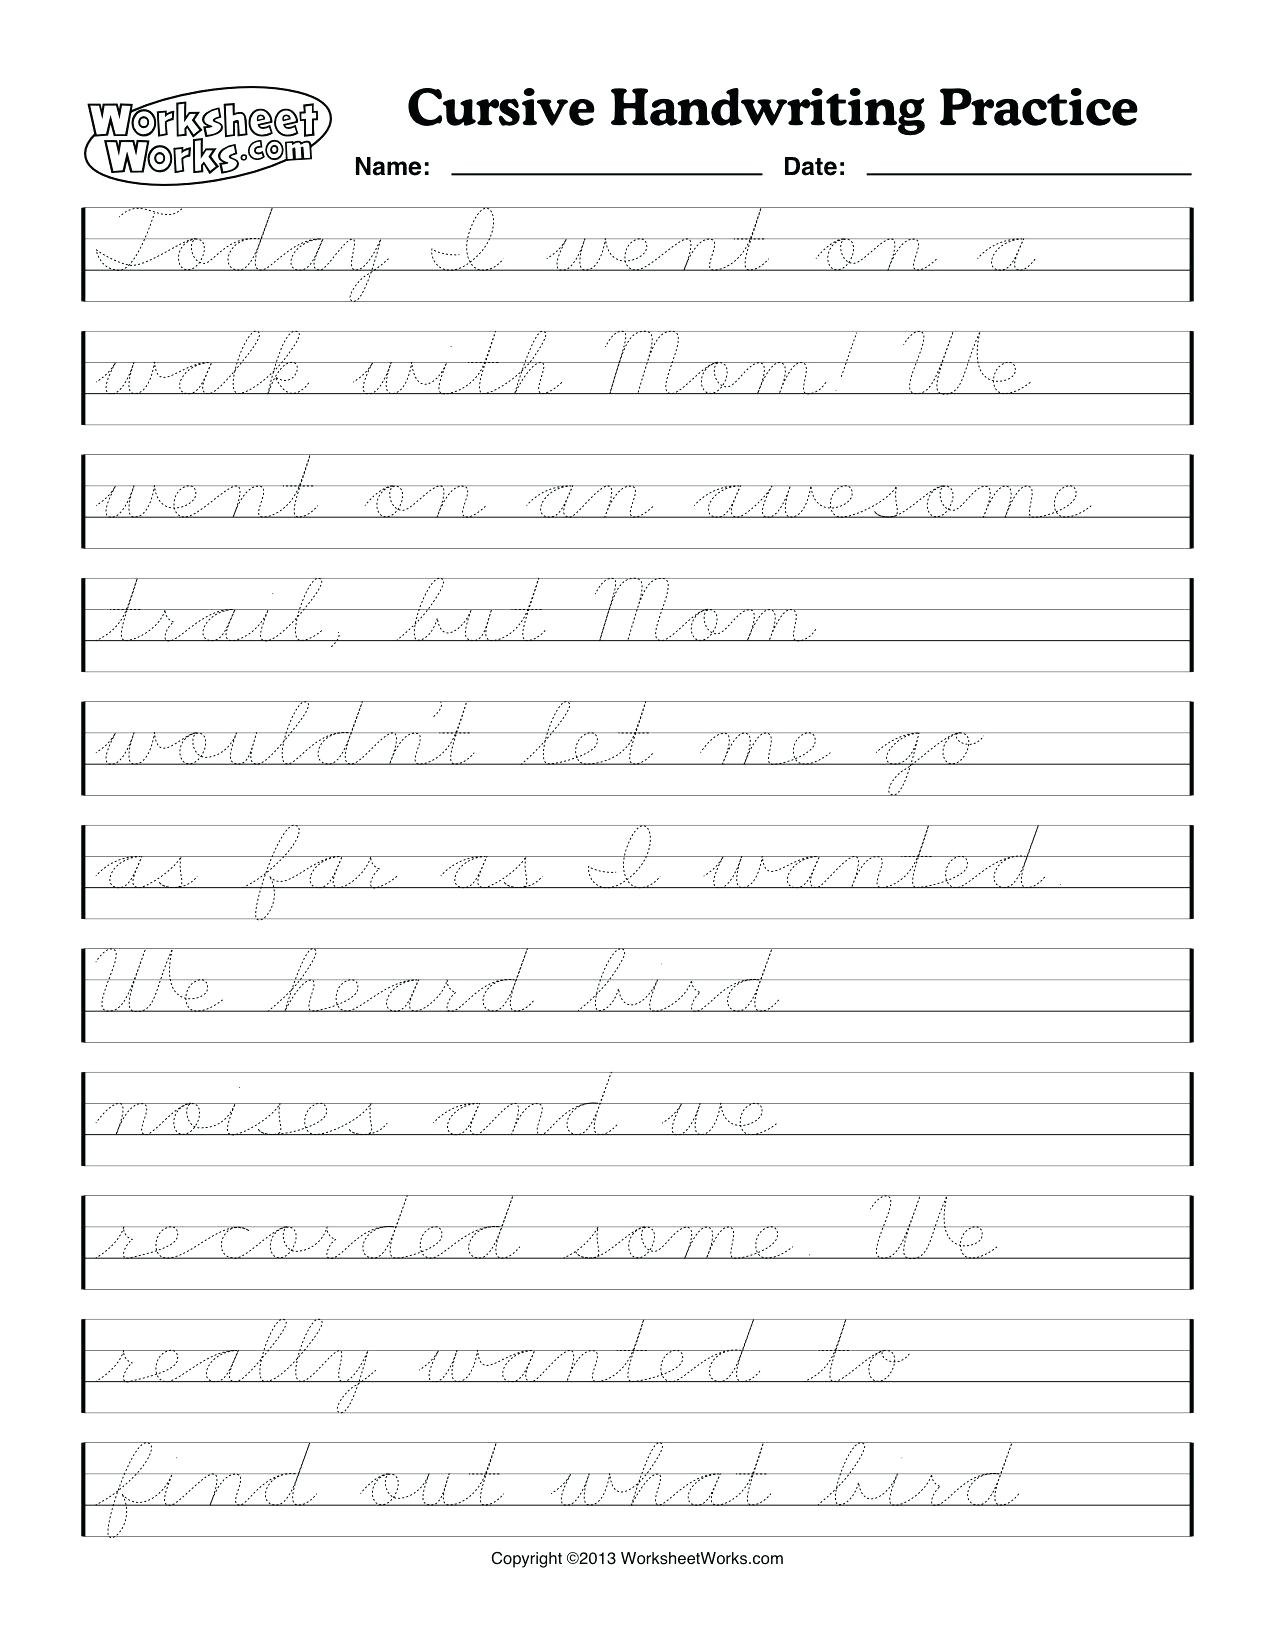 Printable Cursive Writing Worksheets Pdf Math Worksheet Awesome Worksheets forrsive Writing